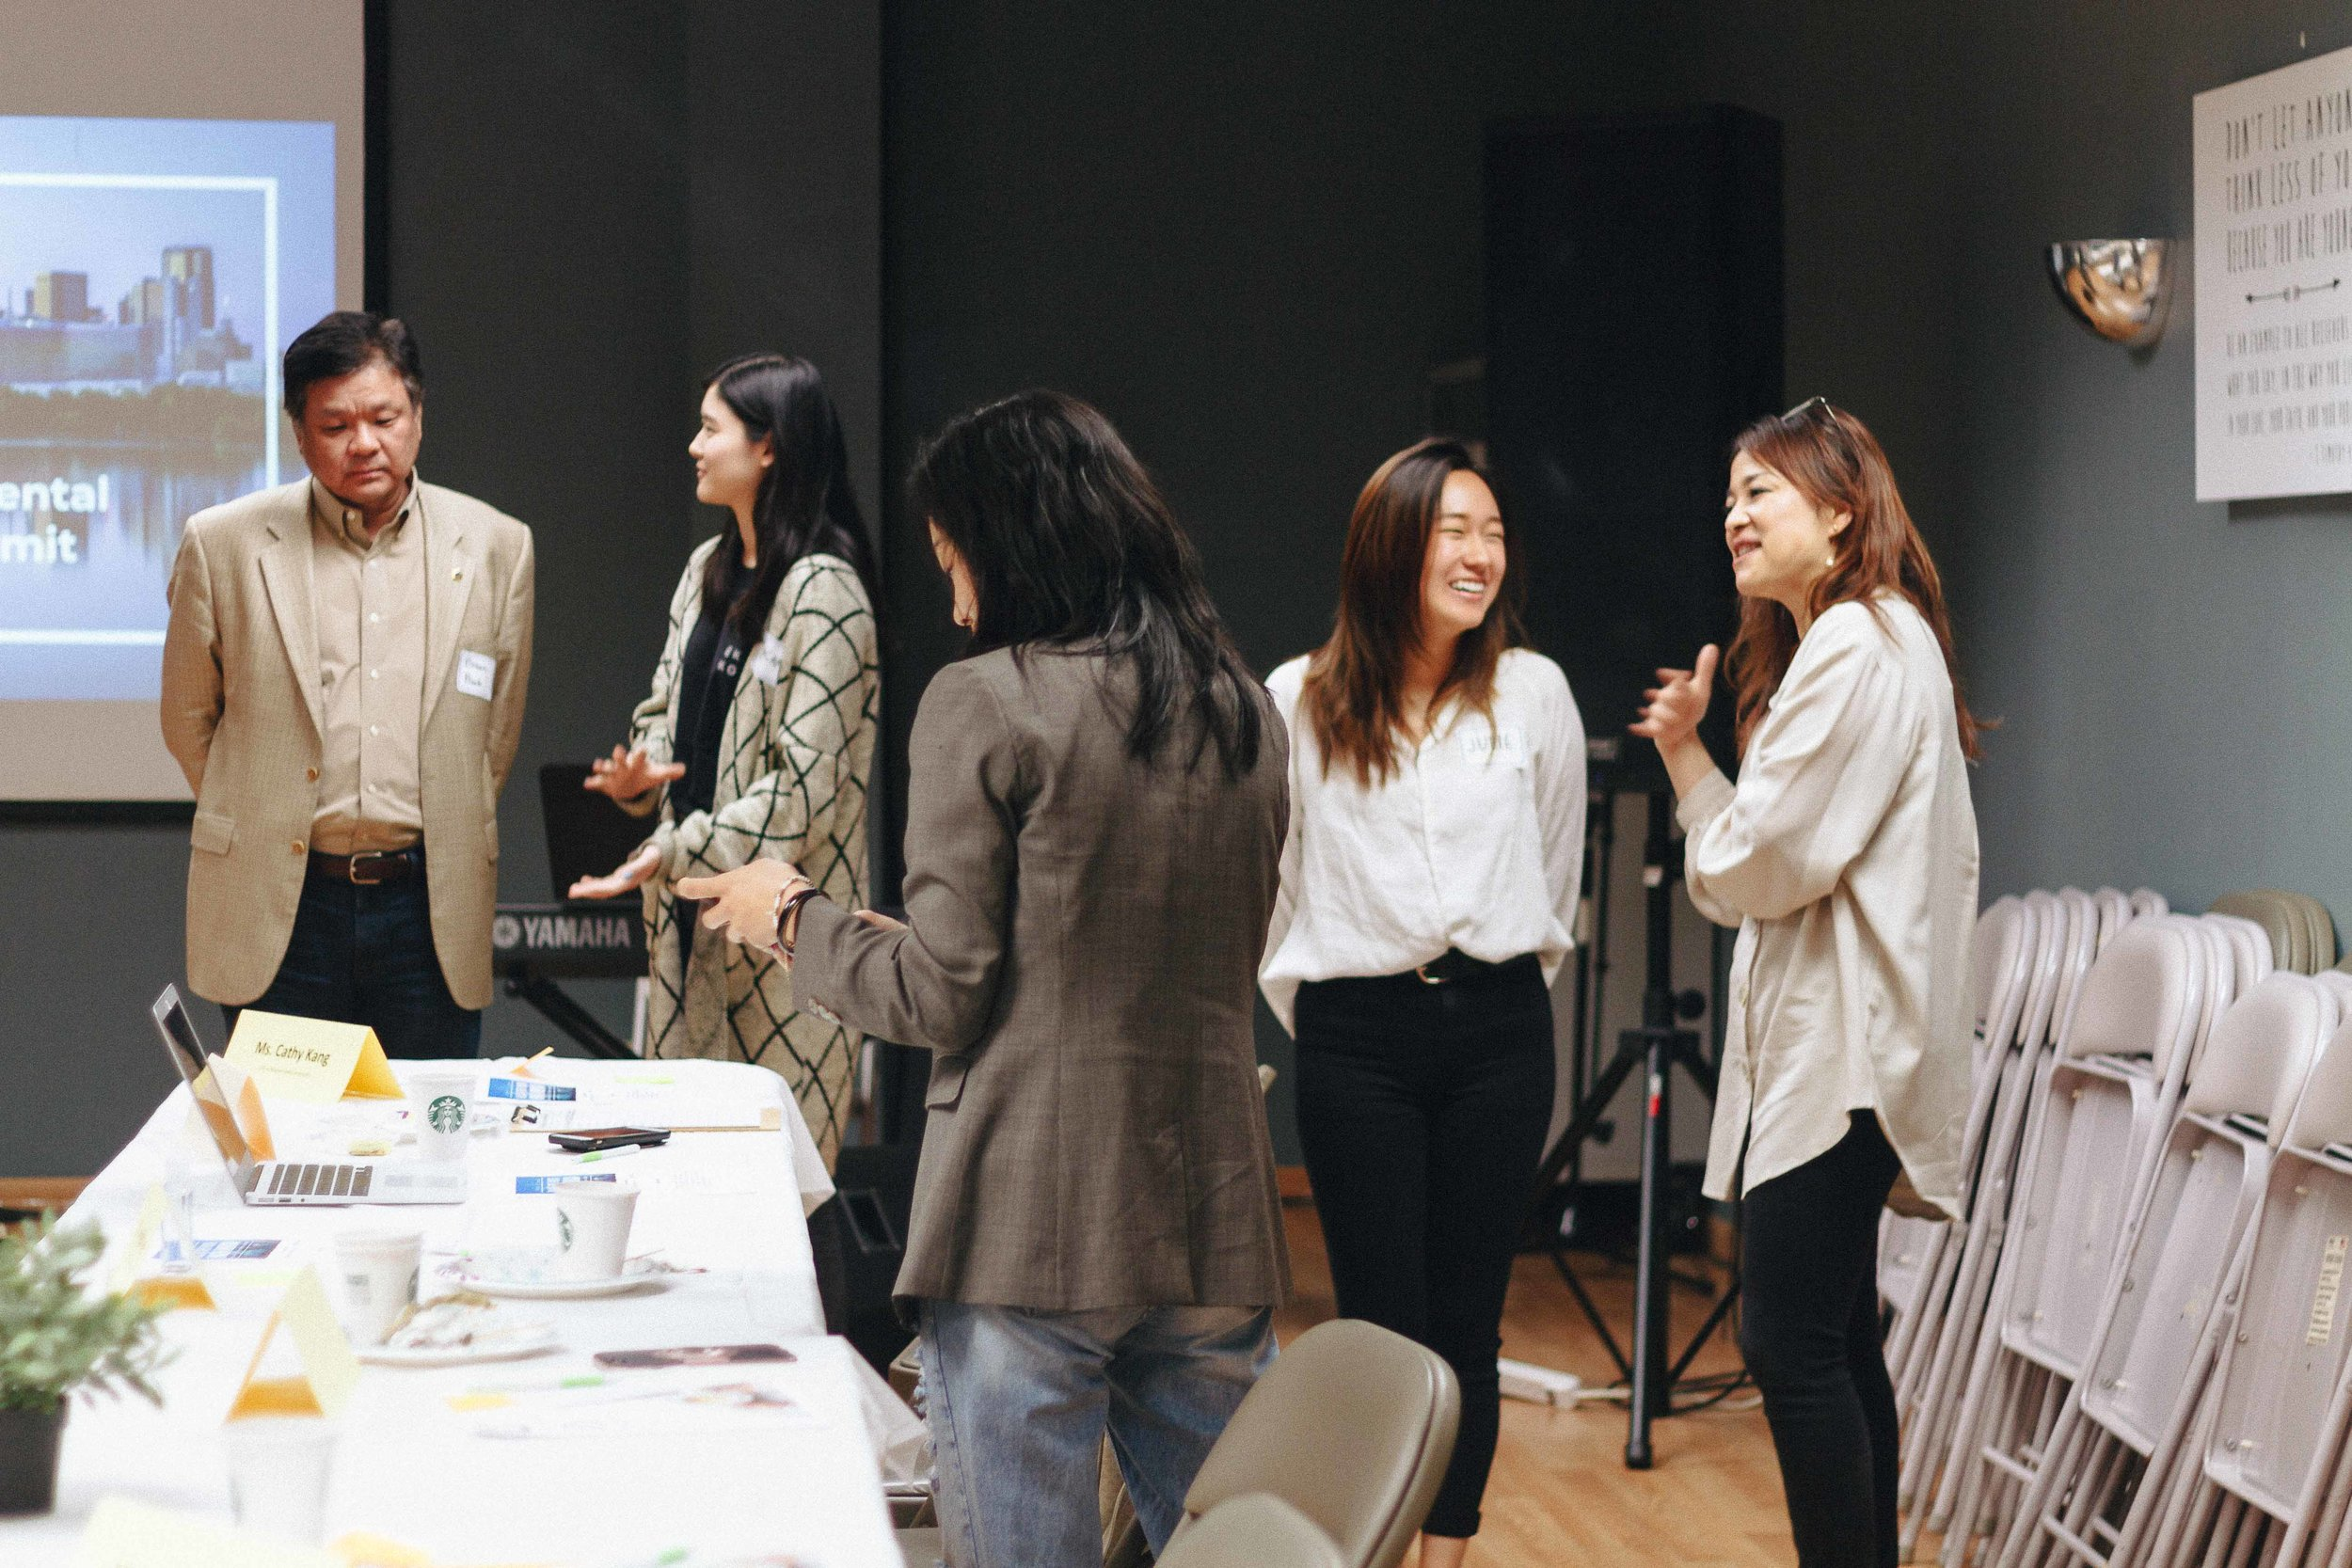 3/9/2019 Dallas-Fort Worth Korean American Mental Health Professionals Summit